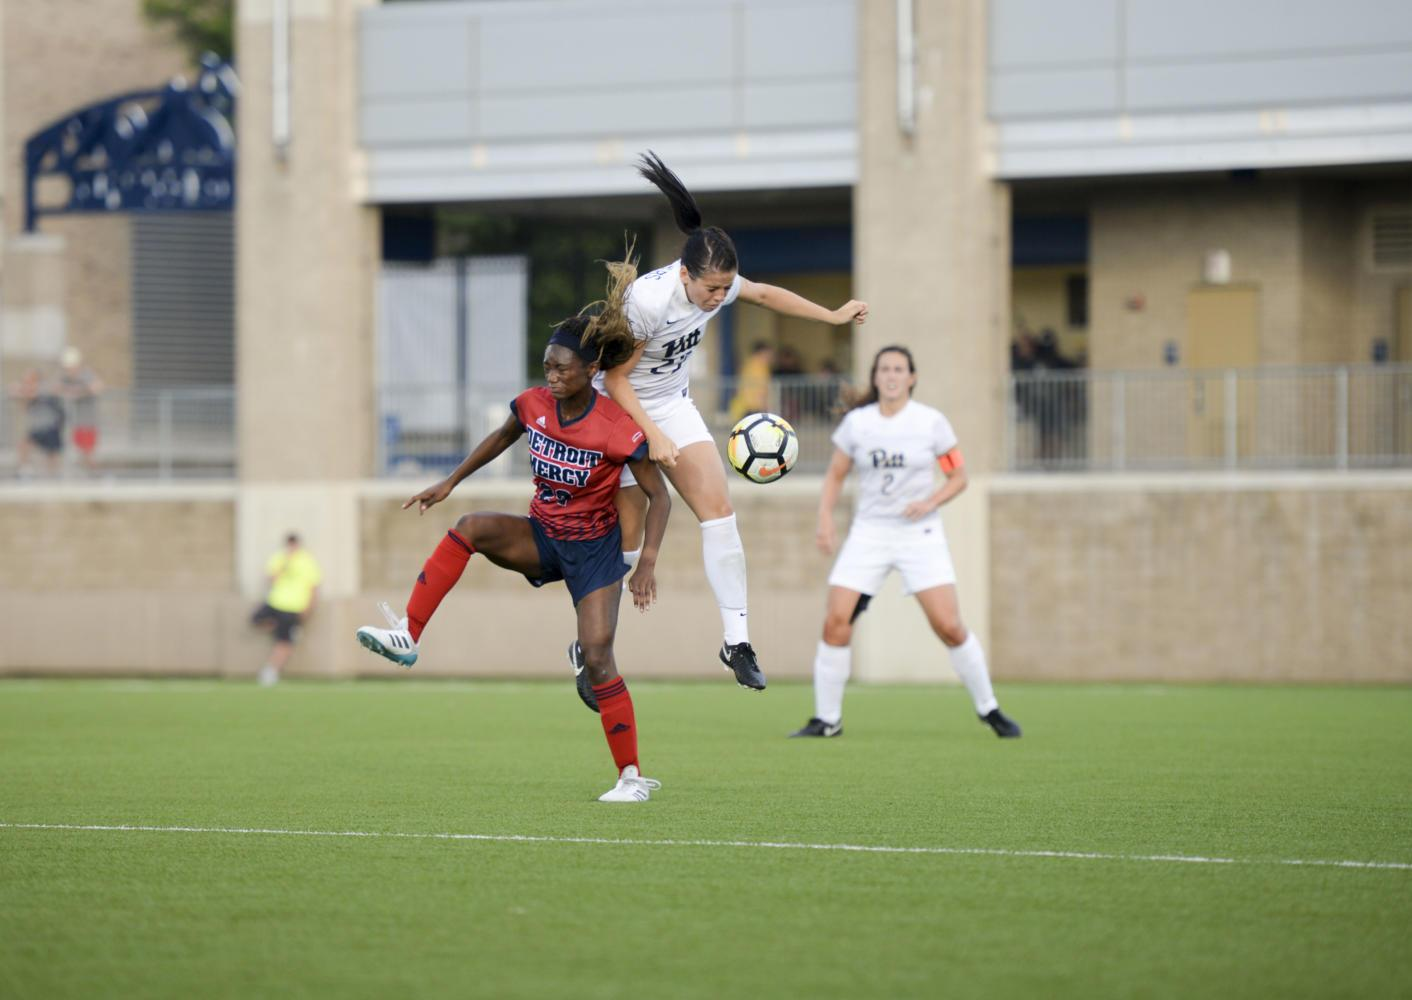 The Pitt women's soccer team defeated the Detroit Mercy Titans 3-1 Wednesday night at Ambrose Urbanic Field. (Thomas Yang | Staff Photographer)